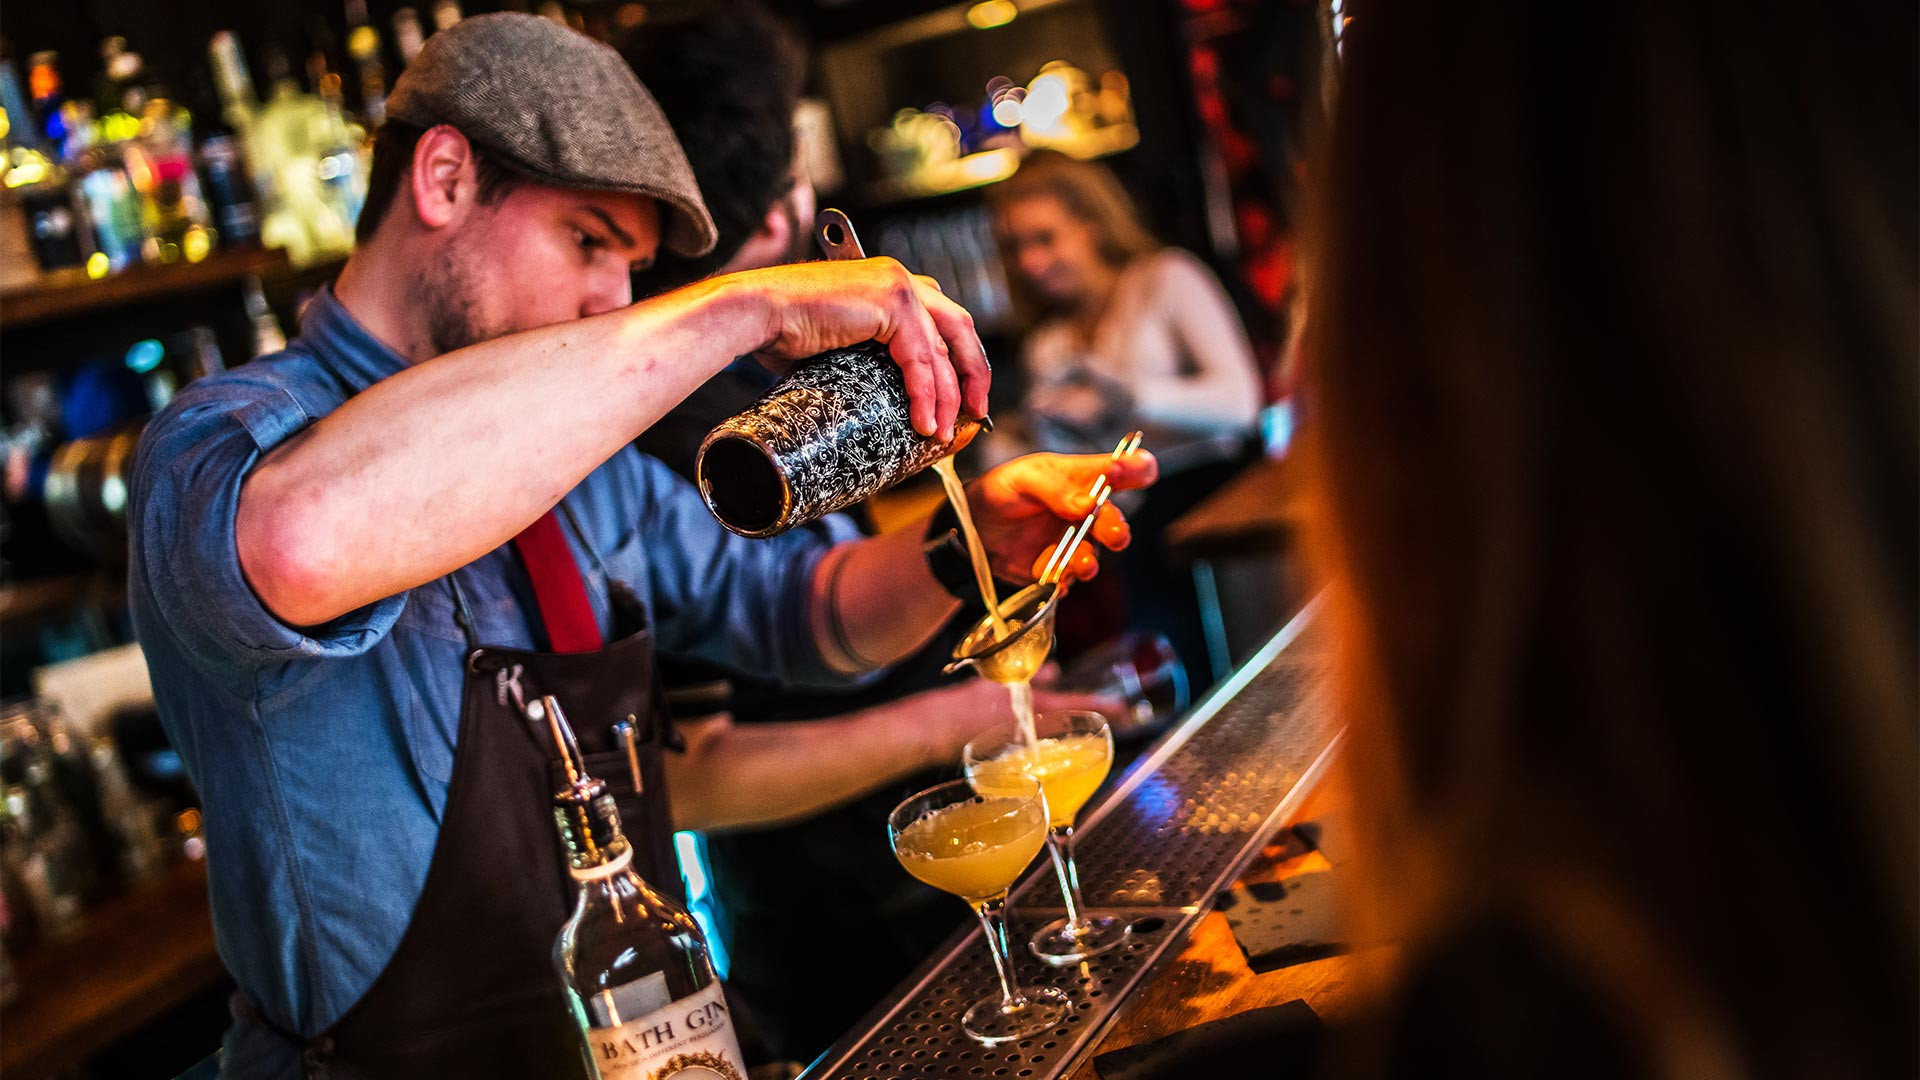 Pouring cocktails at Bath Gin's Canary Gin Bar